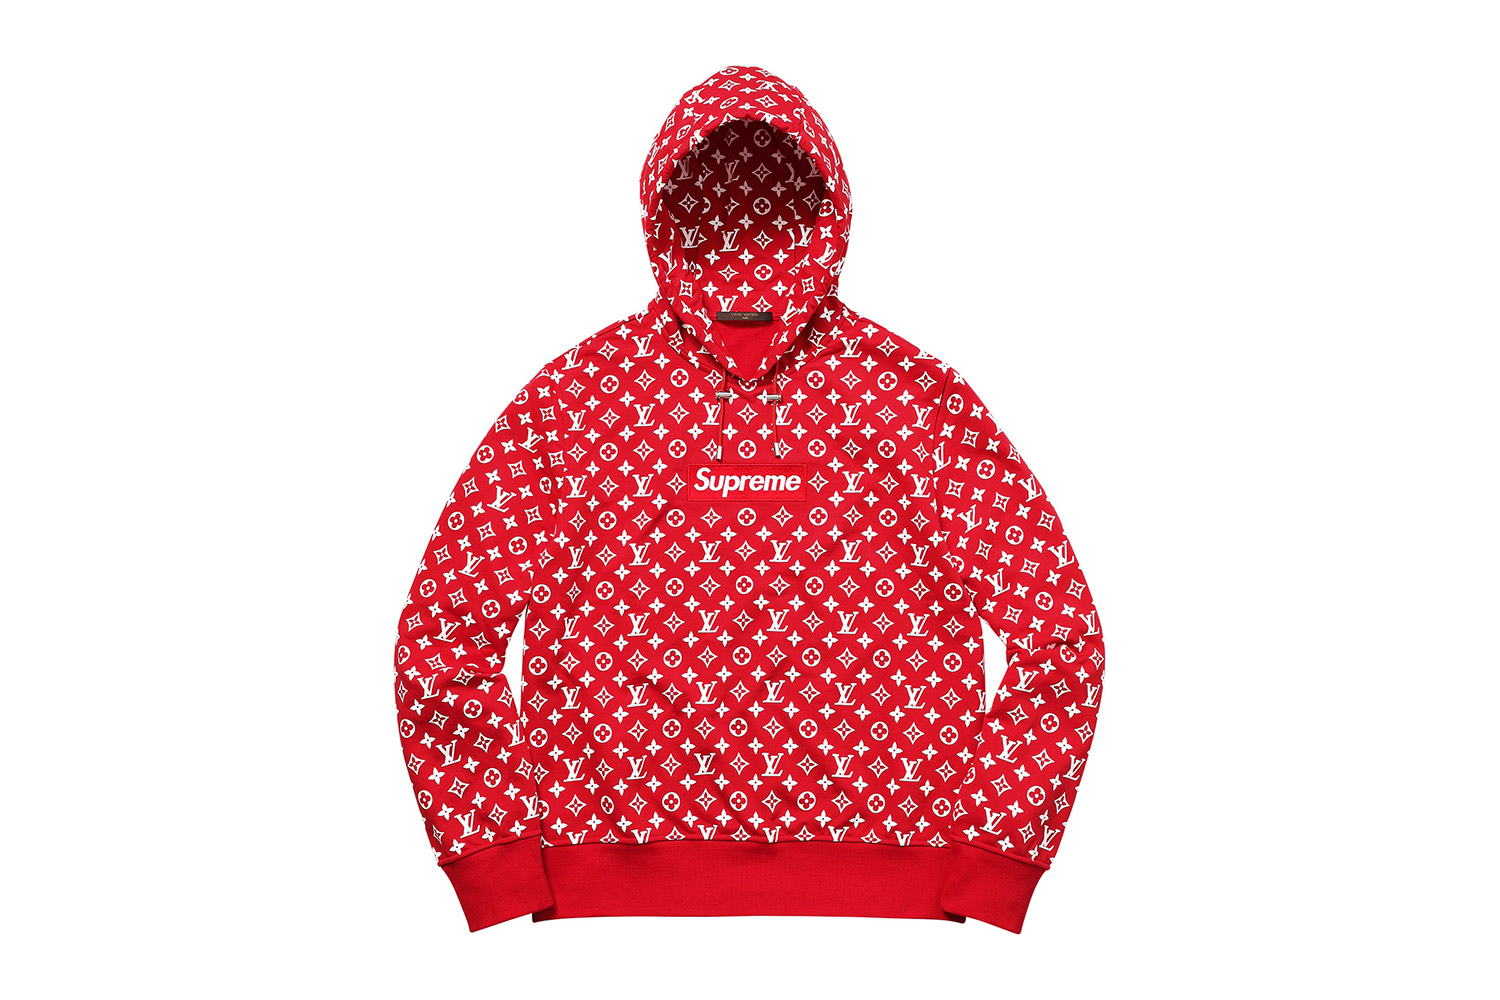 supreme-louis-vuitton-every-piece-14.jpg